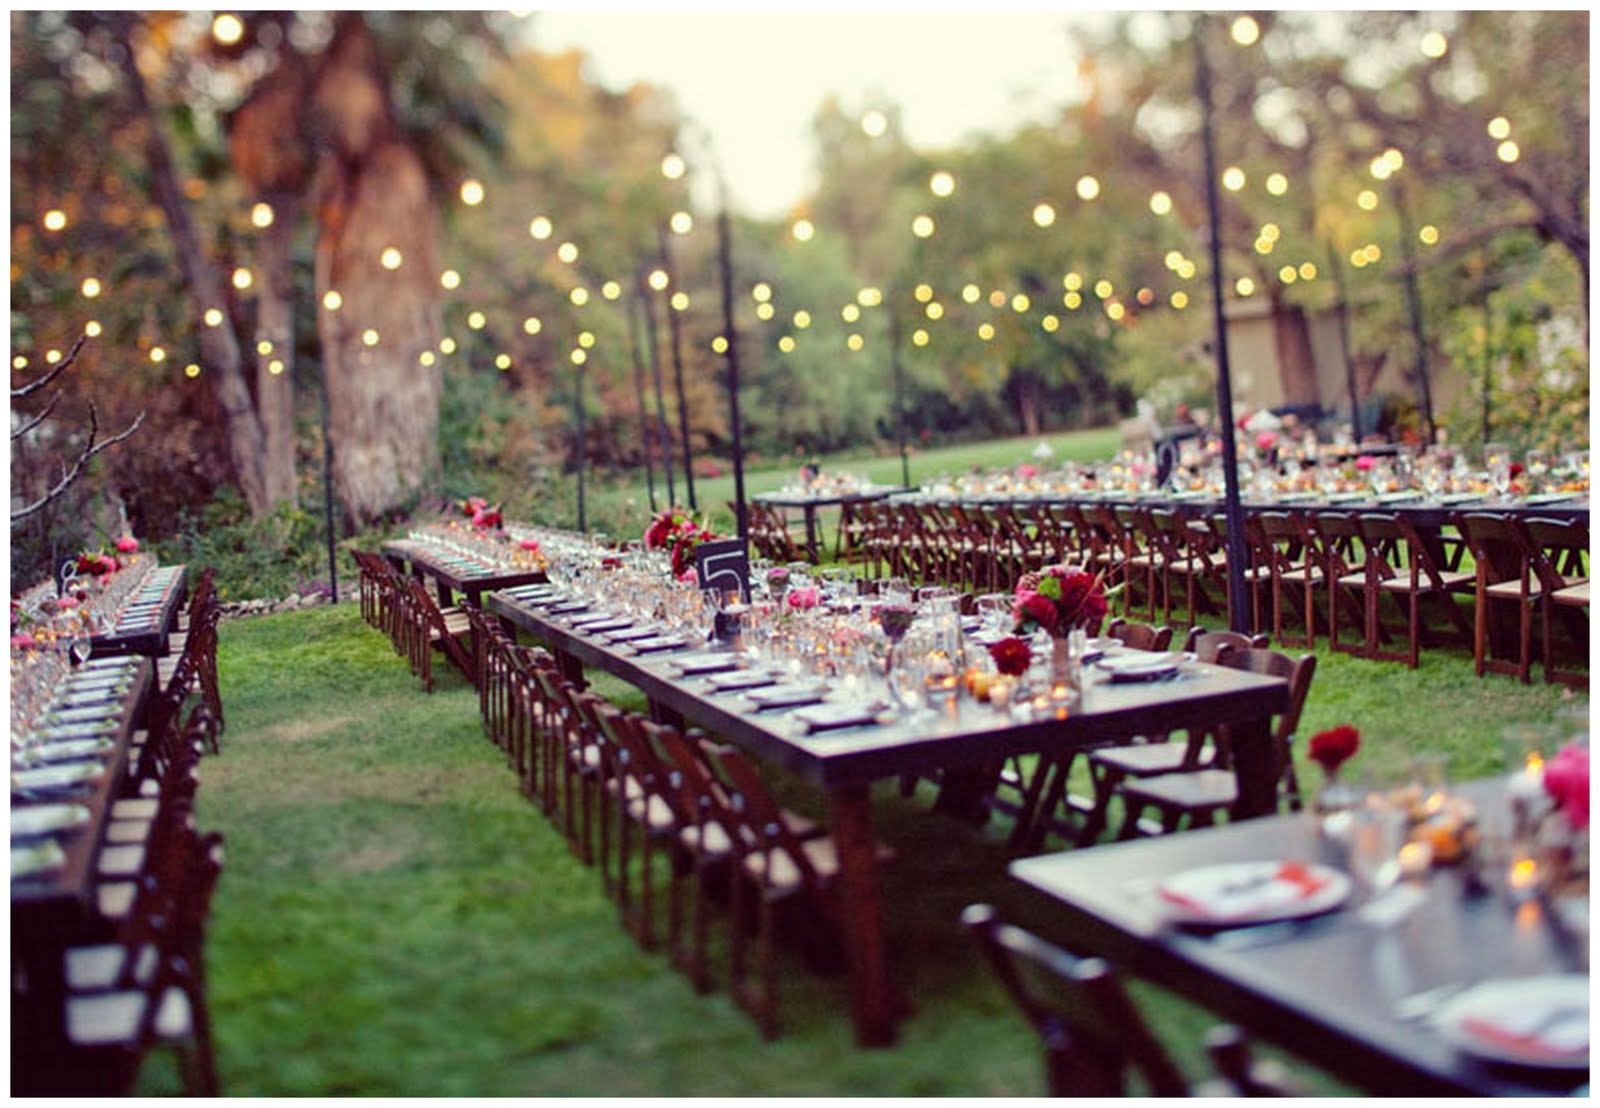 Real enchanted garden wedding kelly steve for Outdoor wedding reception ideas